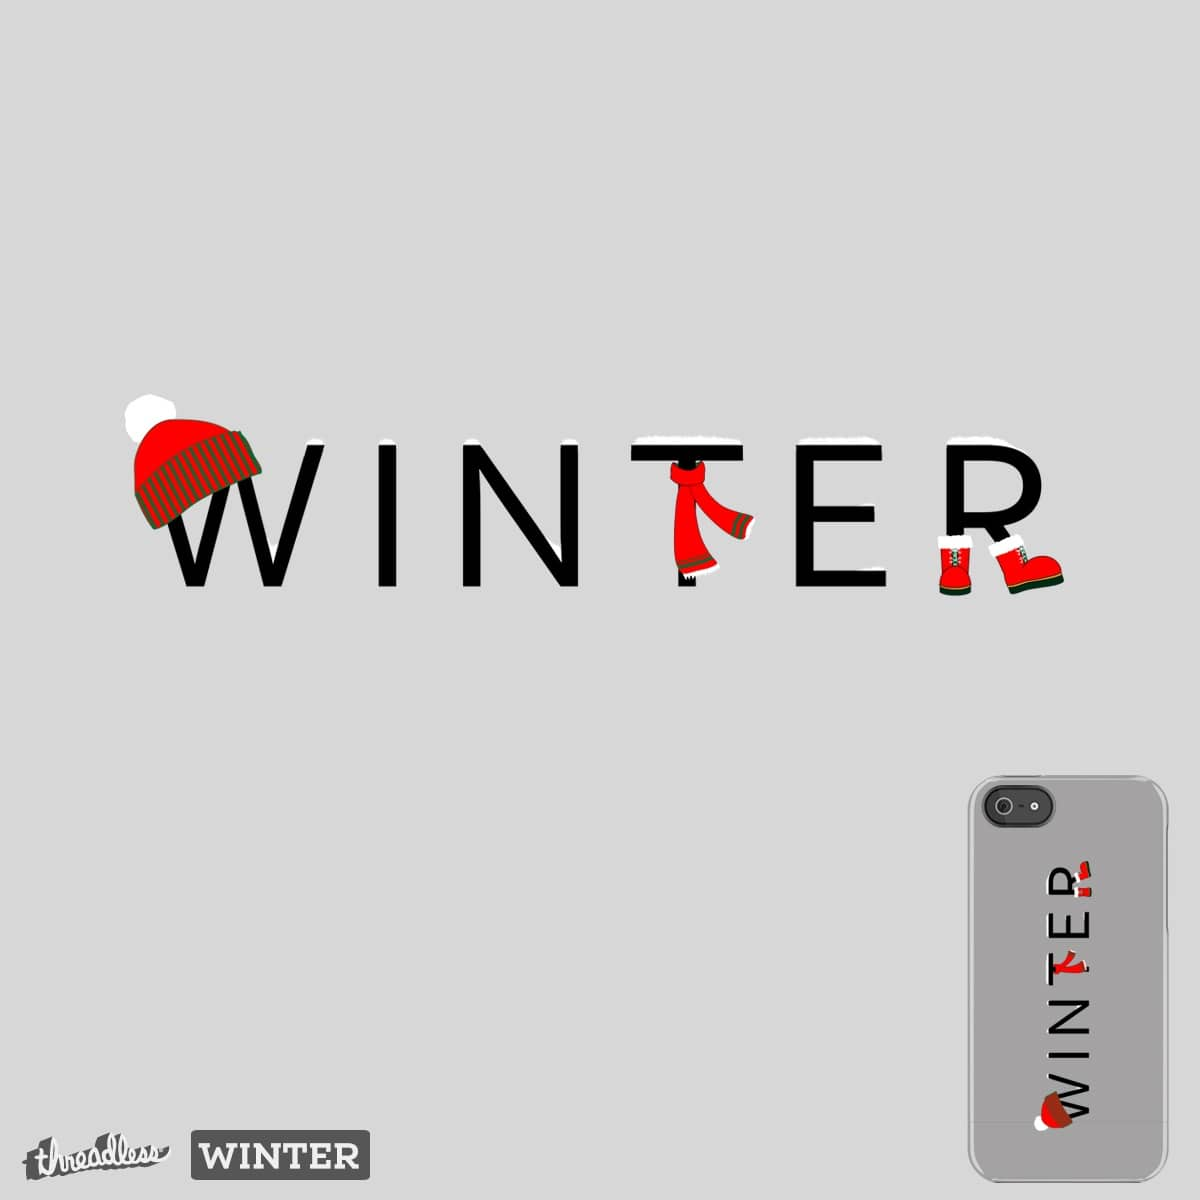 Winter Time by Margol on Threadless